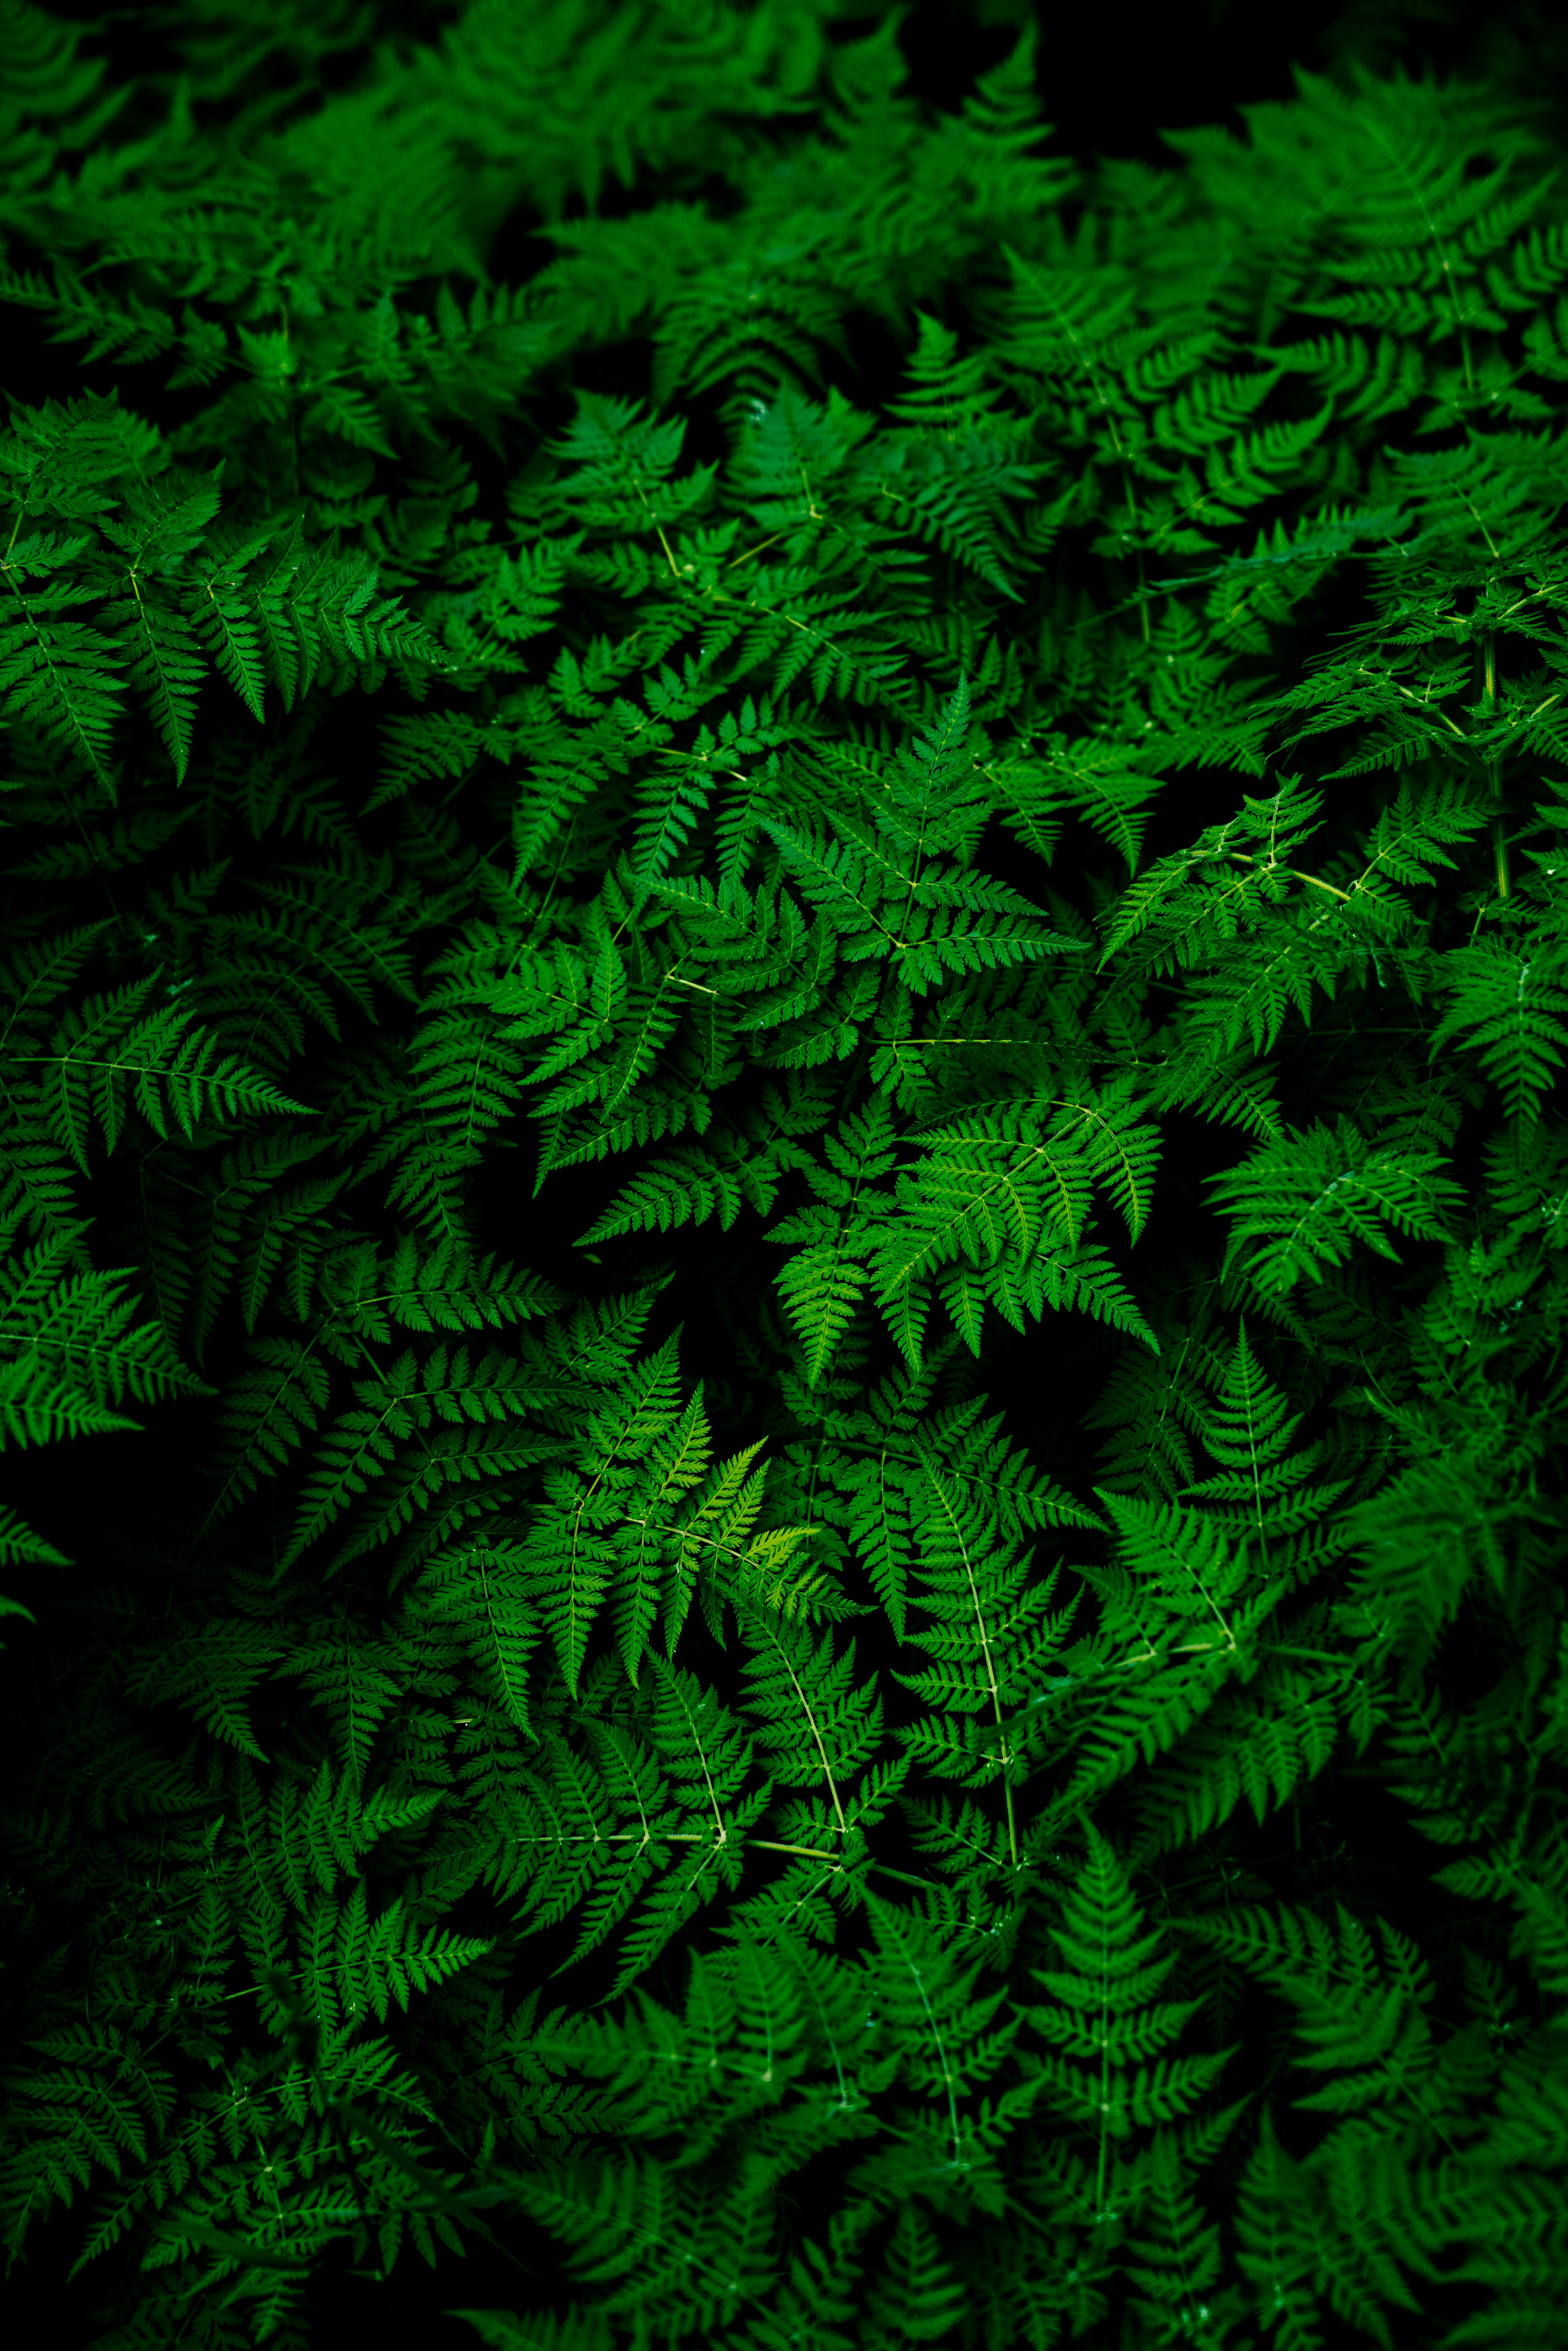 Green Pictures Hd Download Free Images On Unsplash